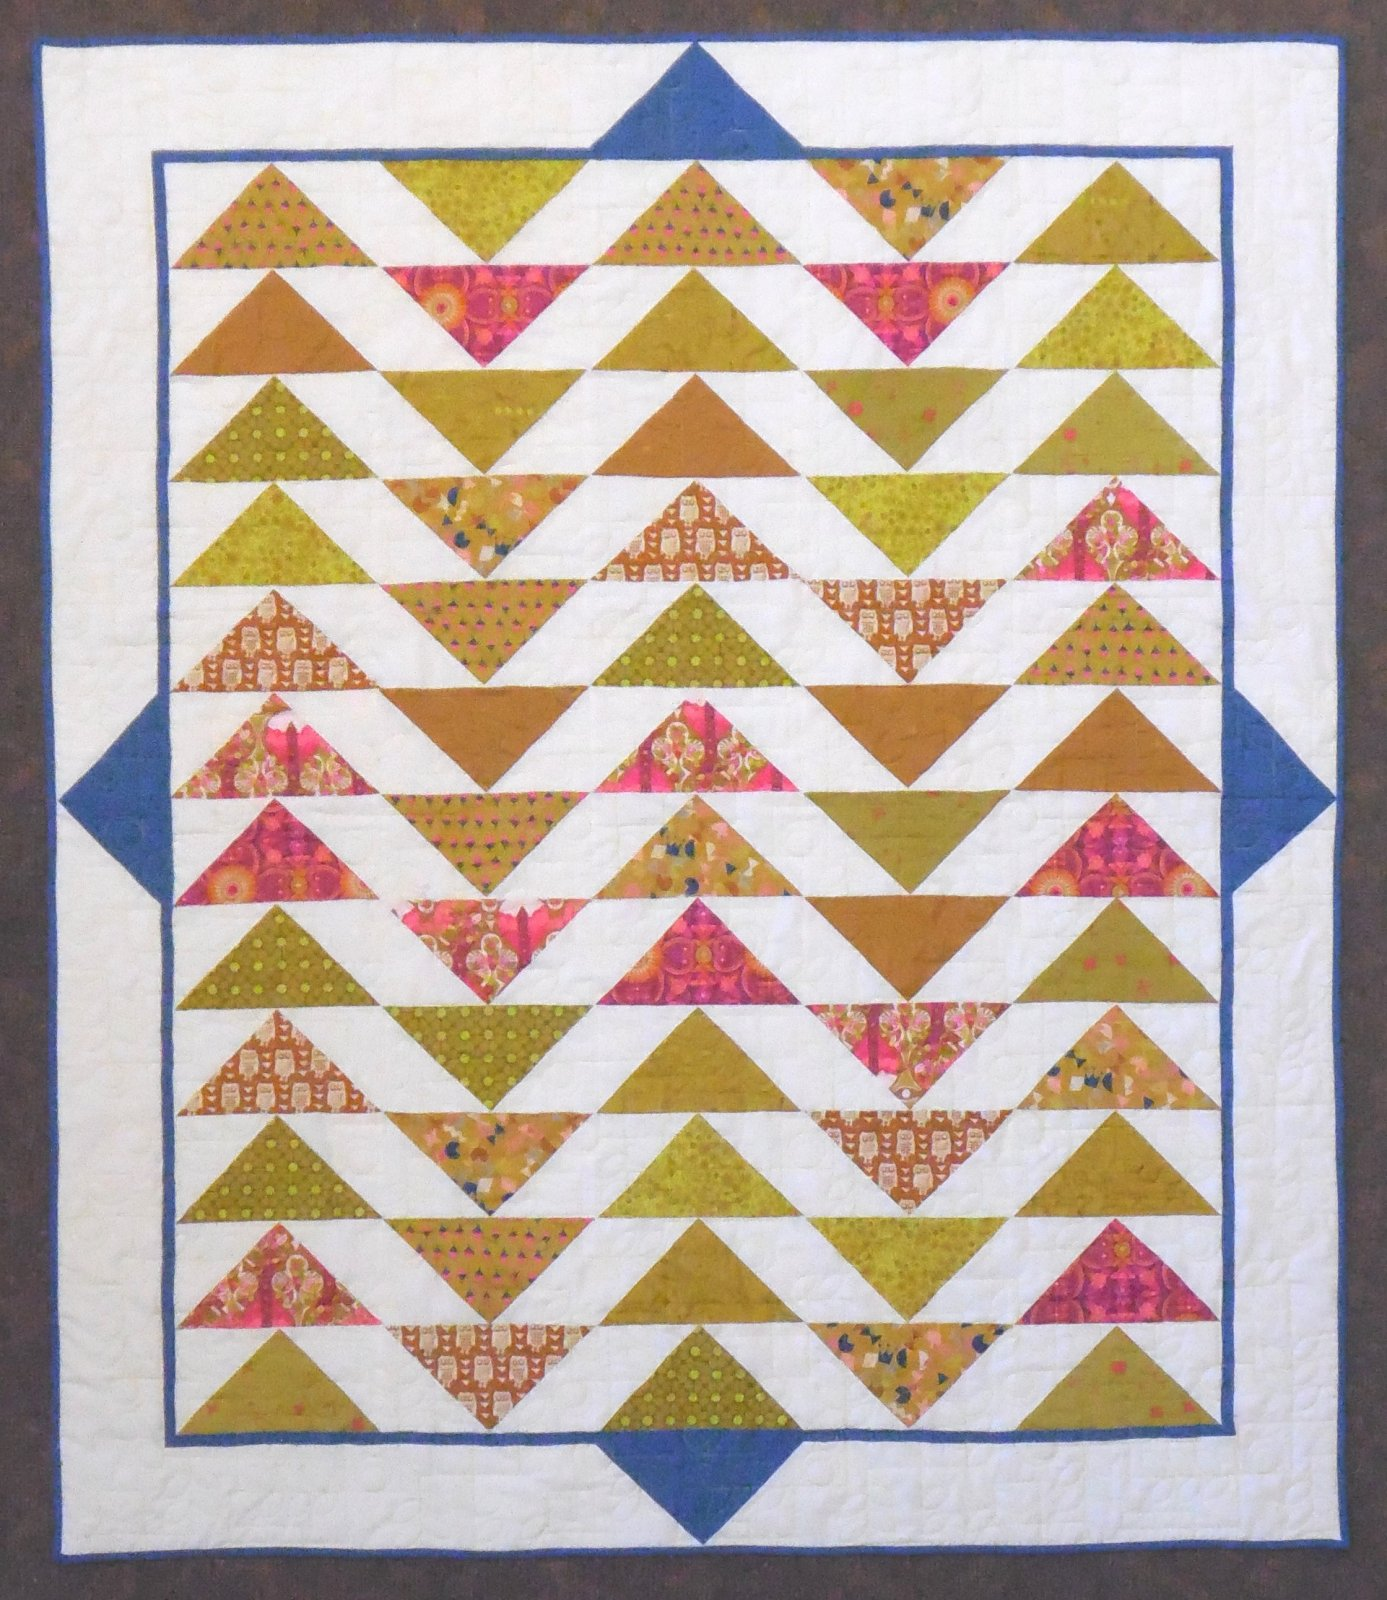 Plenum Quilt Kit 55 x 64